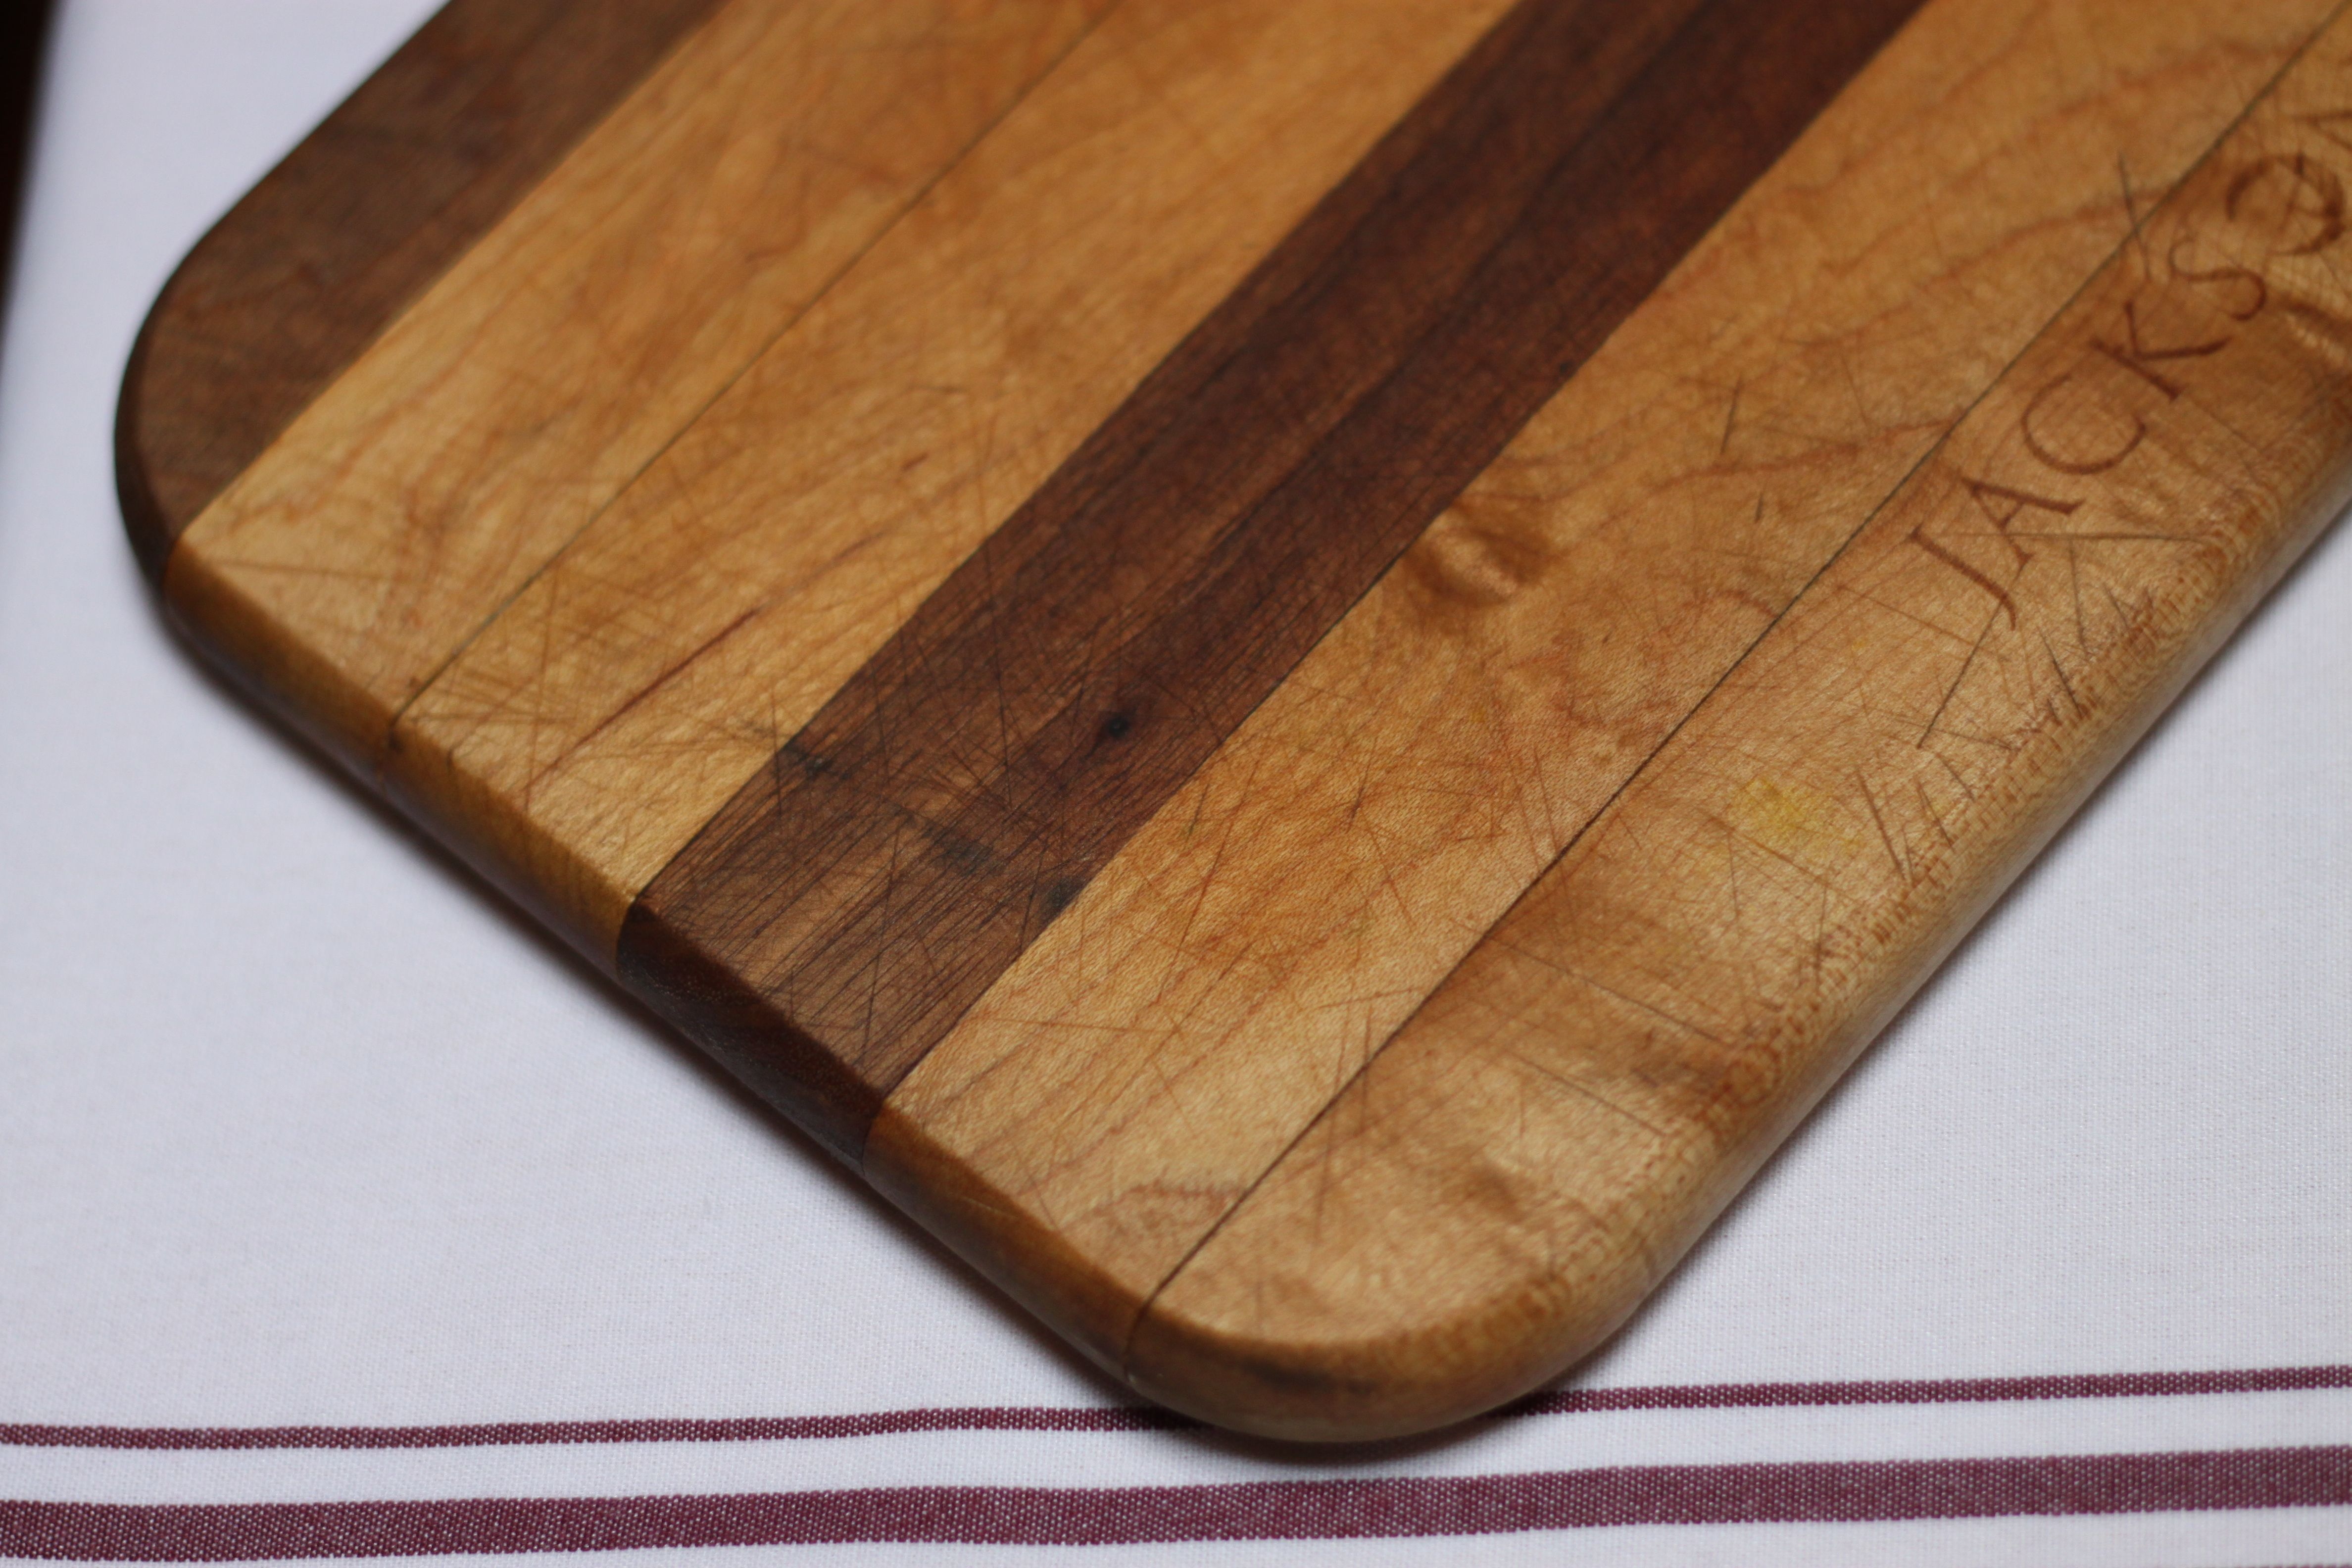 wooden cutting board, after oiling